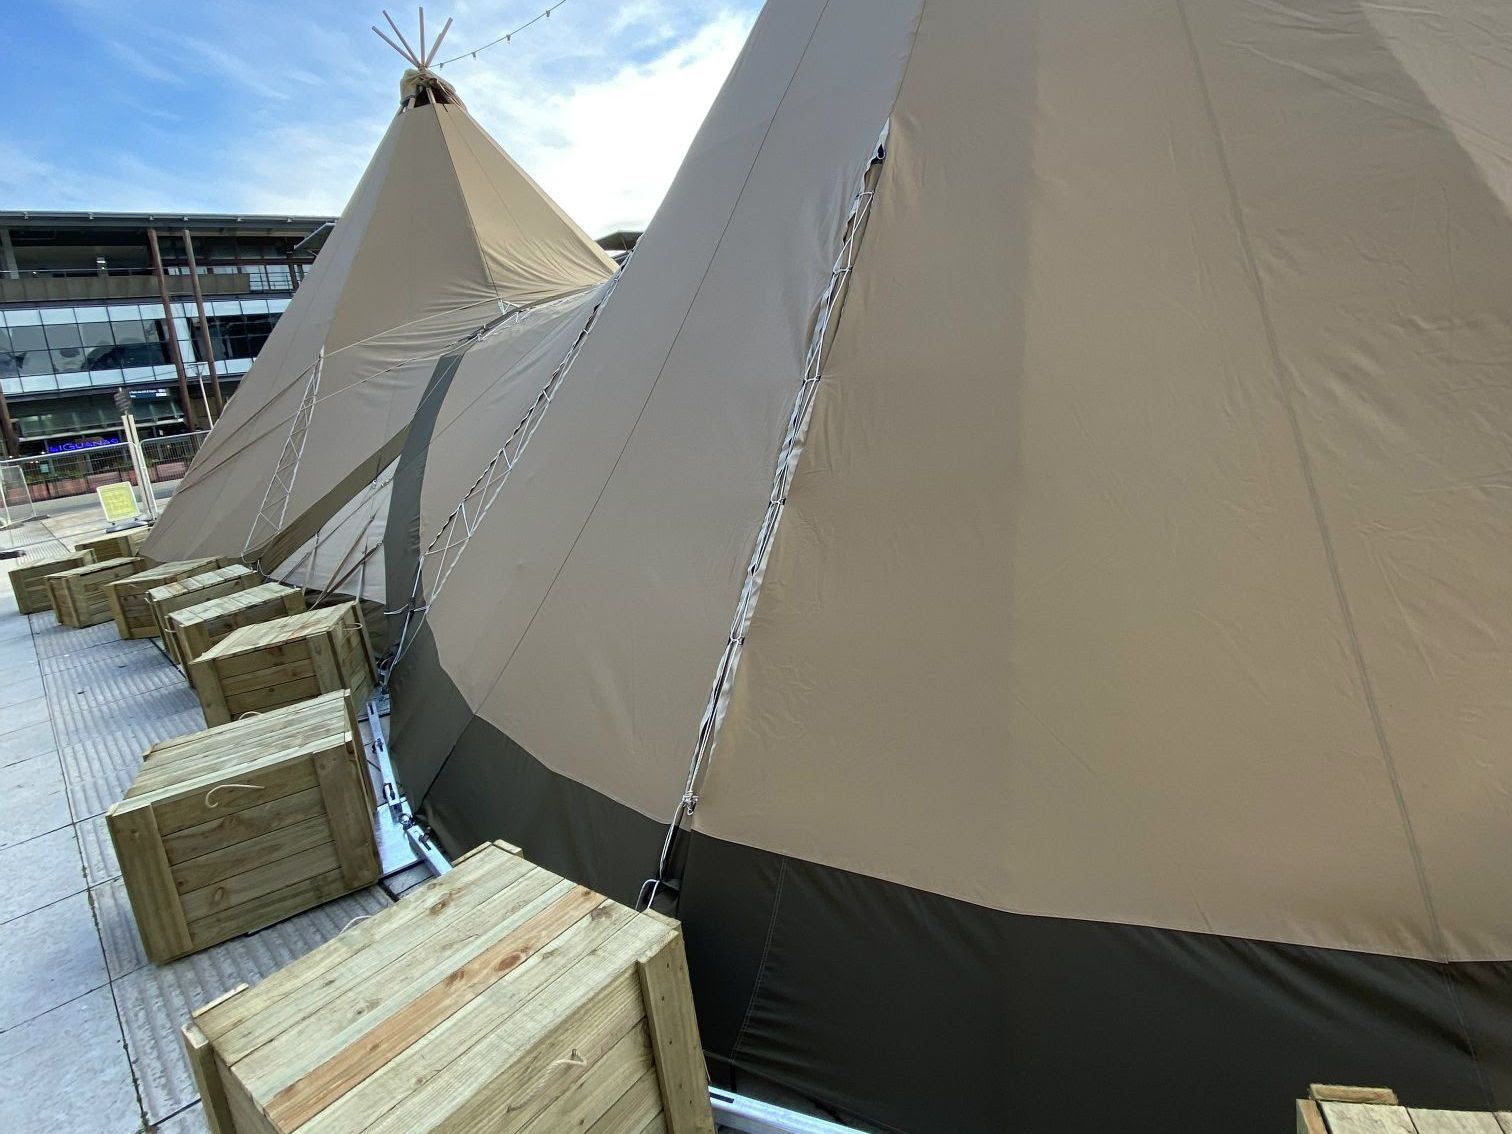 giant tipis in a town centre